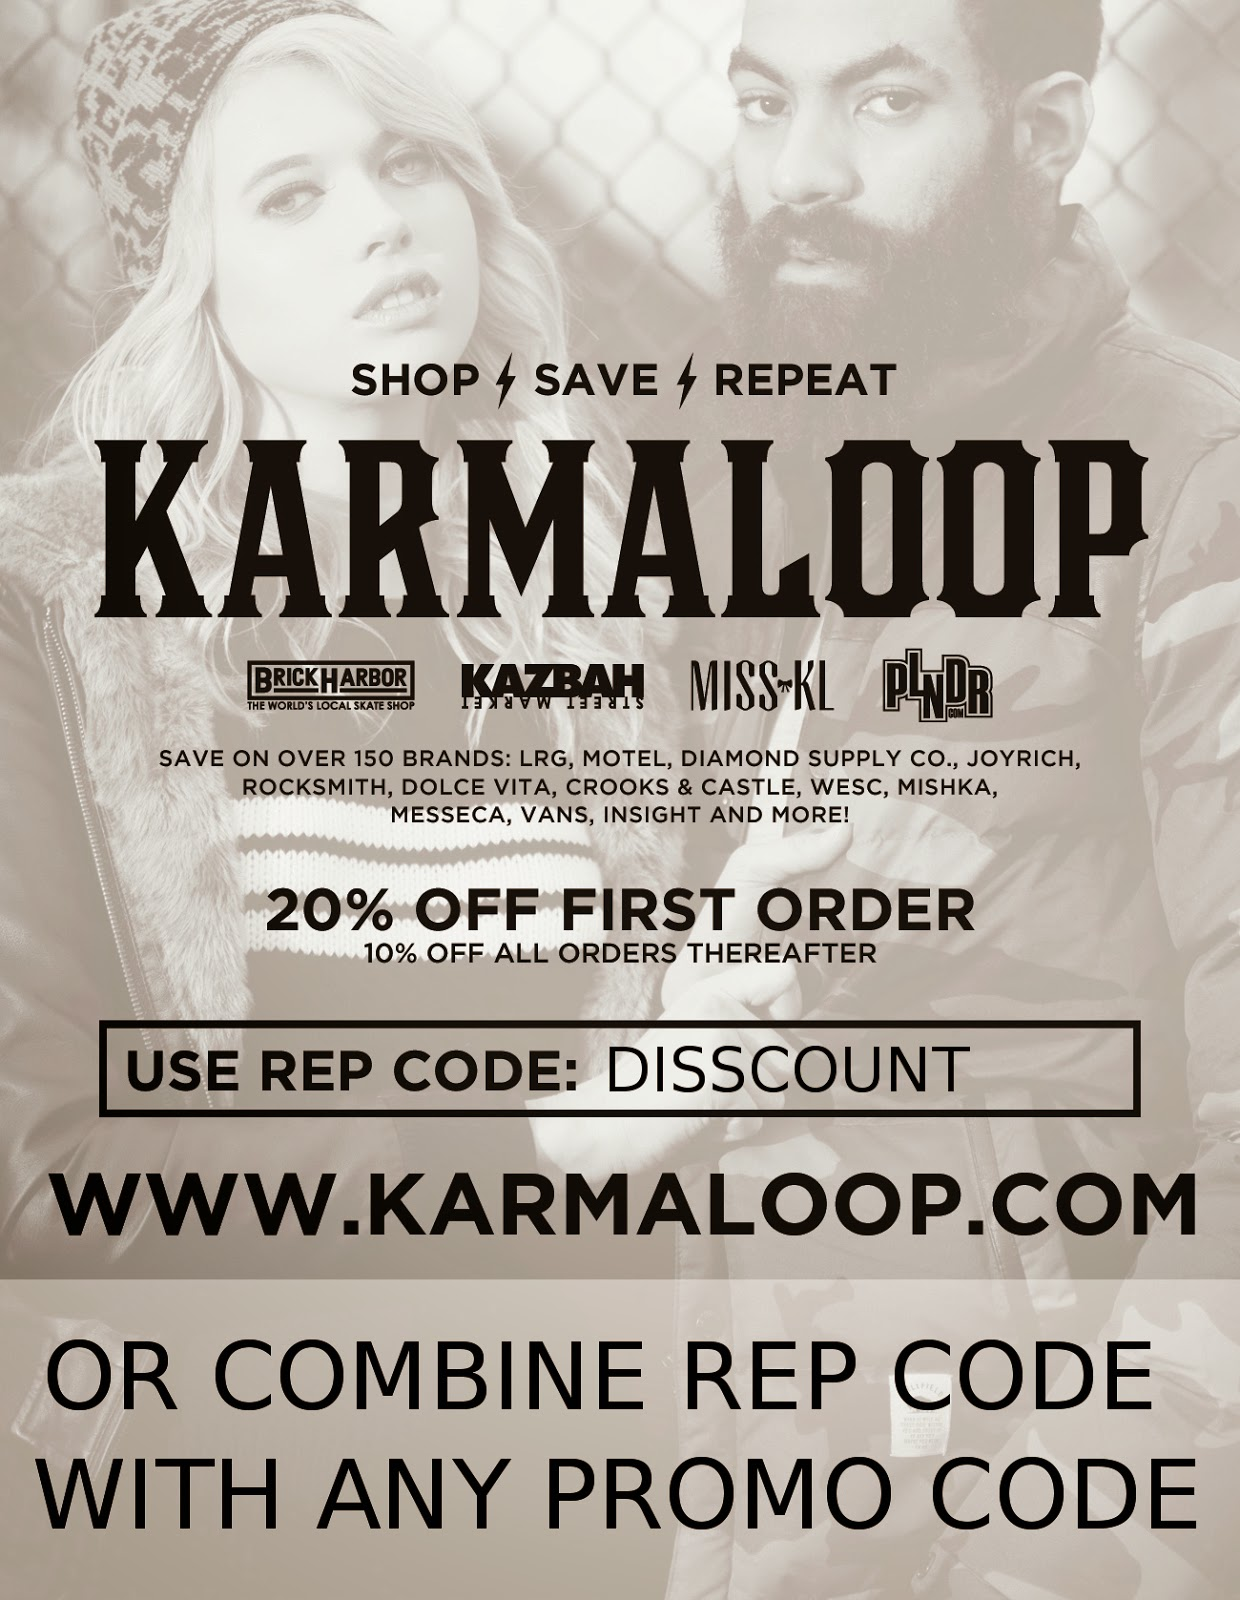 Browse for Karmaloop coupons valid through December below. Find the latest Karmaloop coupon codes, online promotional codes, and the overall best coupons posted by our team of experts to save you 25% off at Karmaloop.